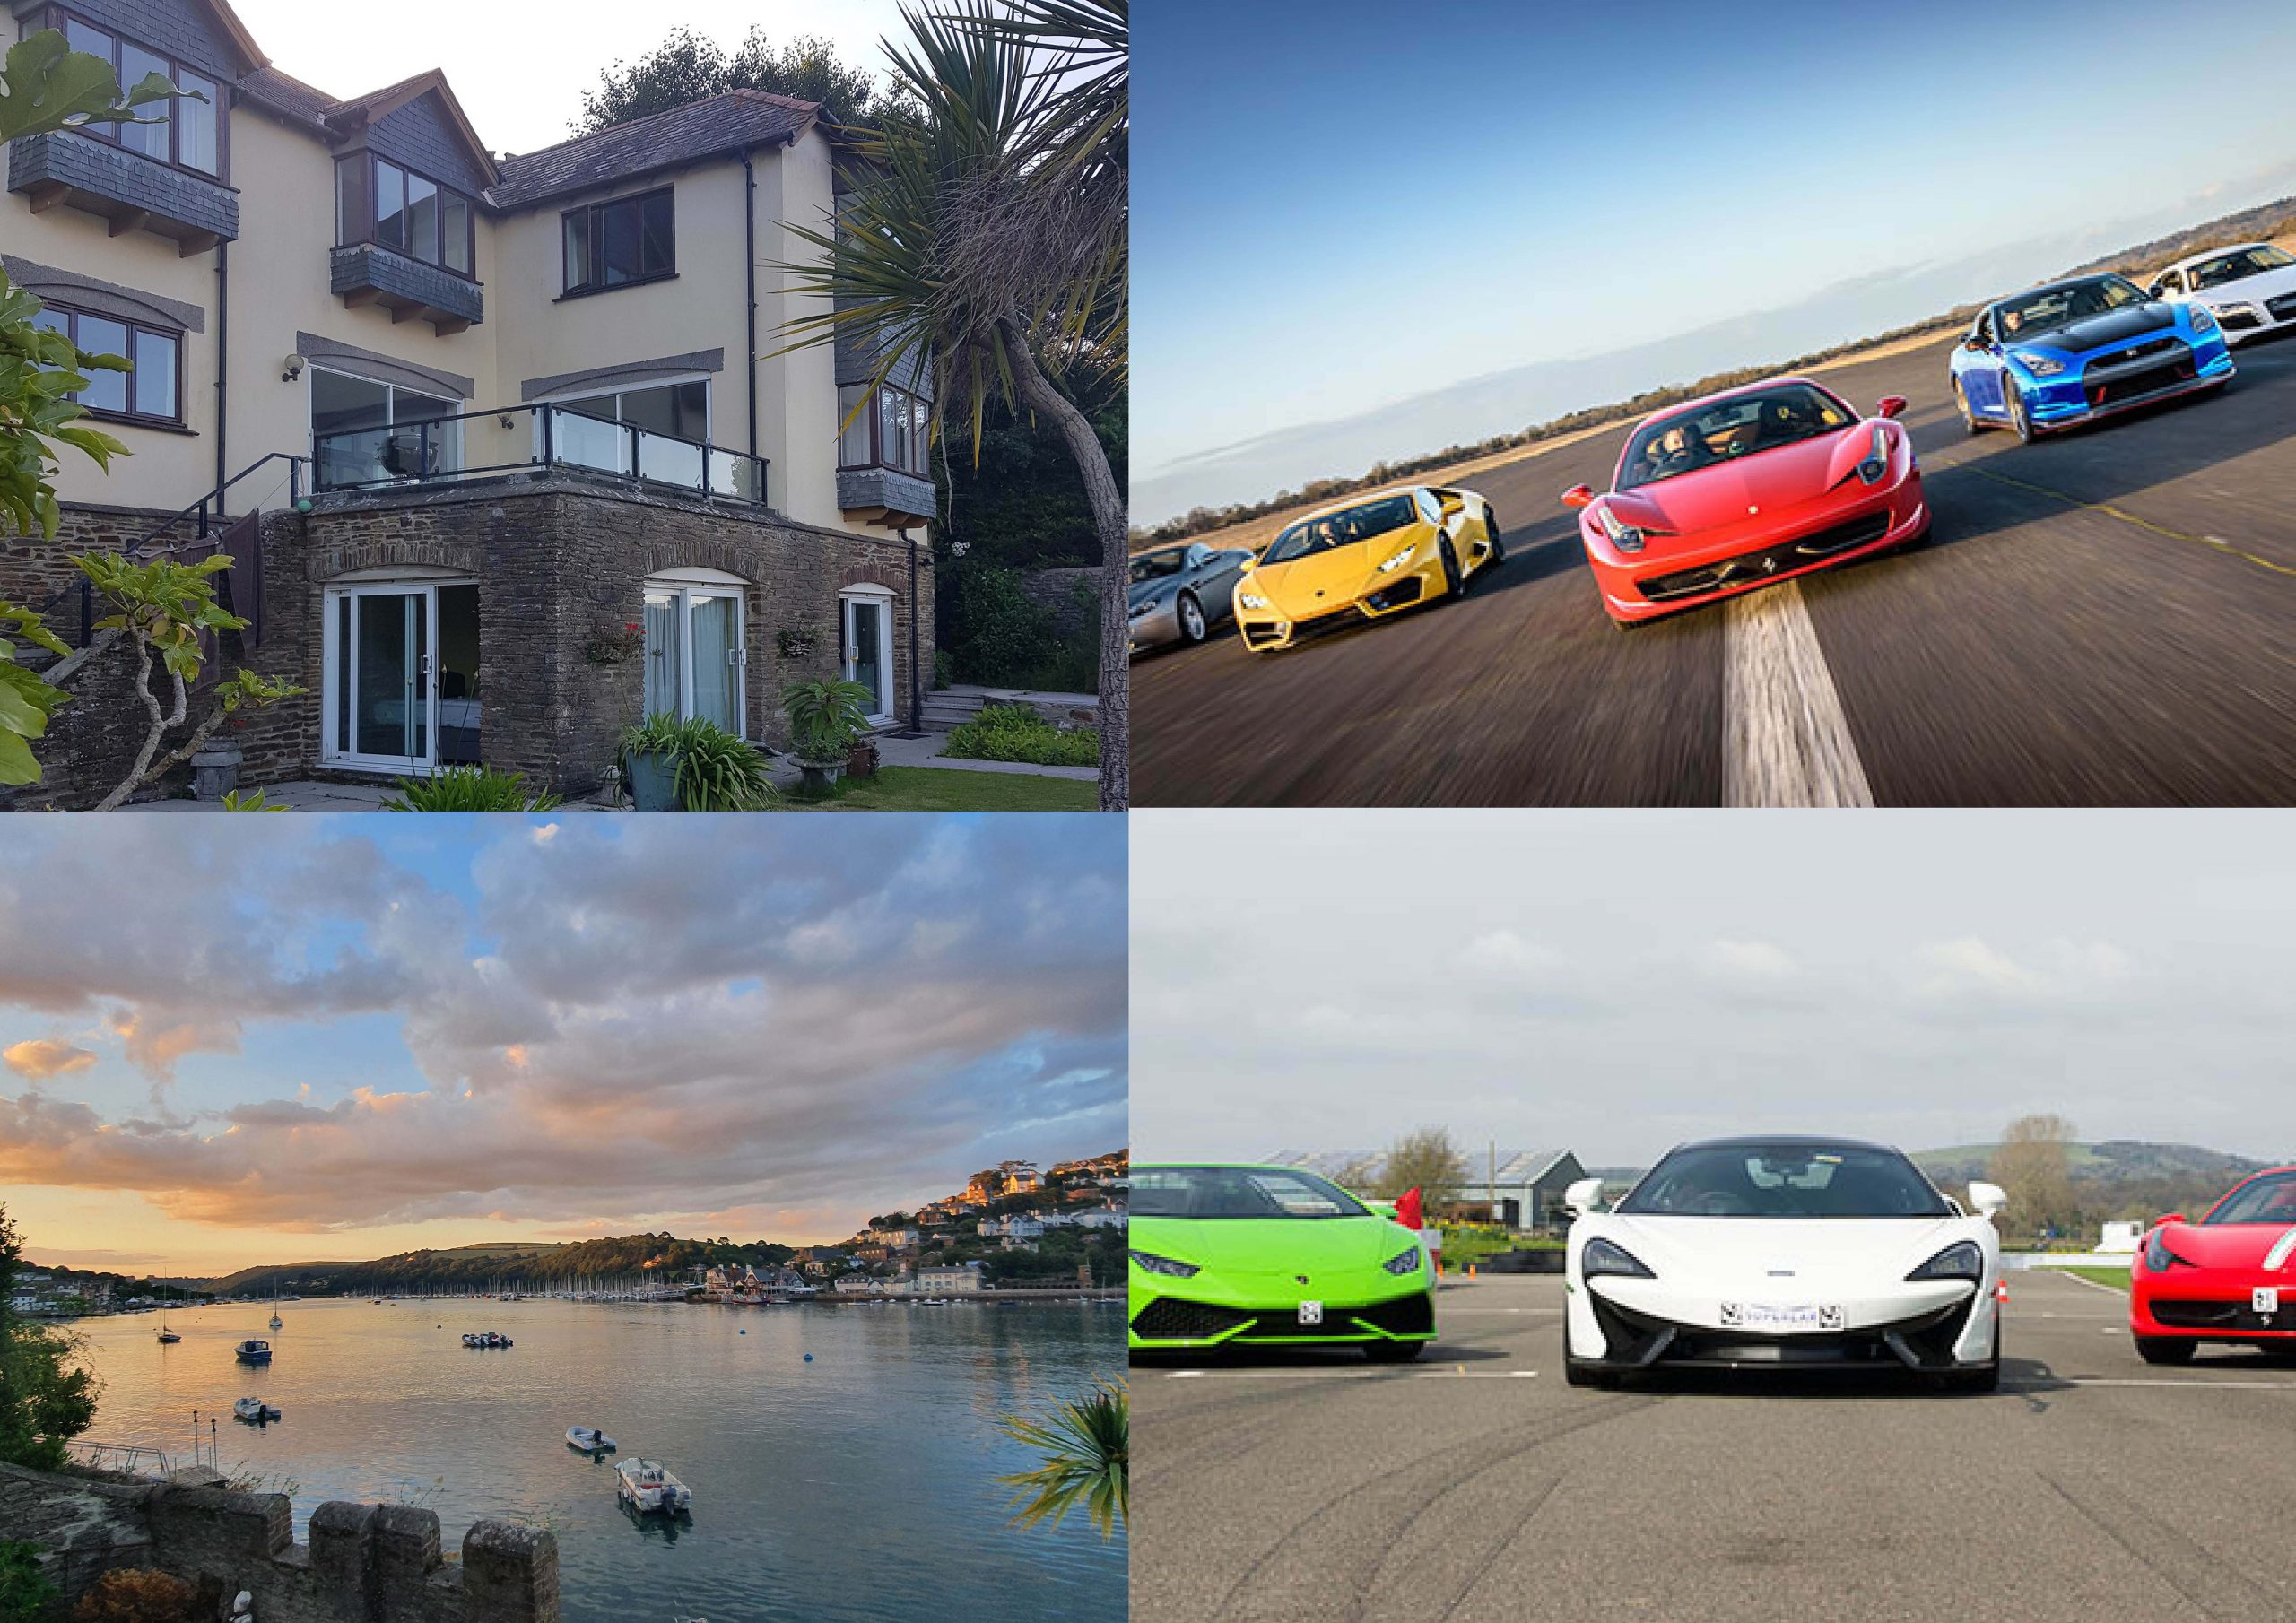 O'Brien Trust Charity Raffles – Waterside Holiday Raffle and 6 Supercar Thrill Experience